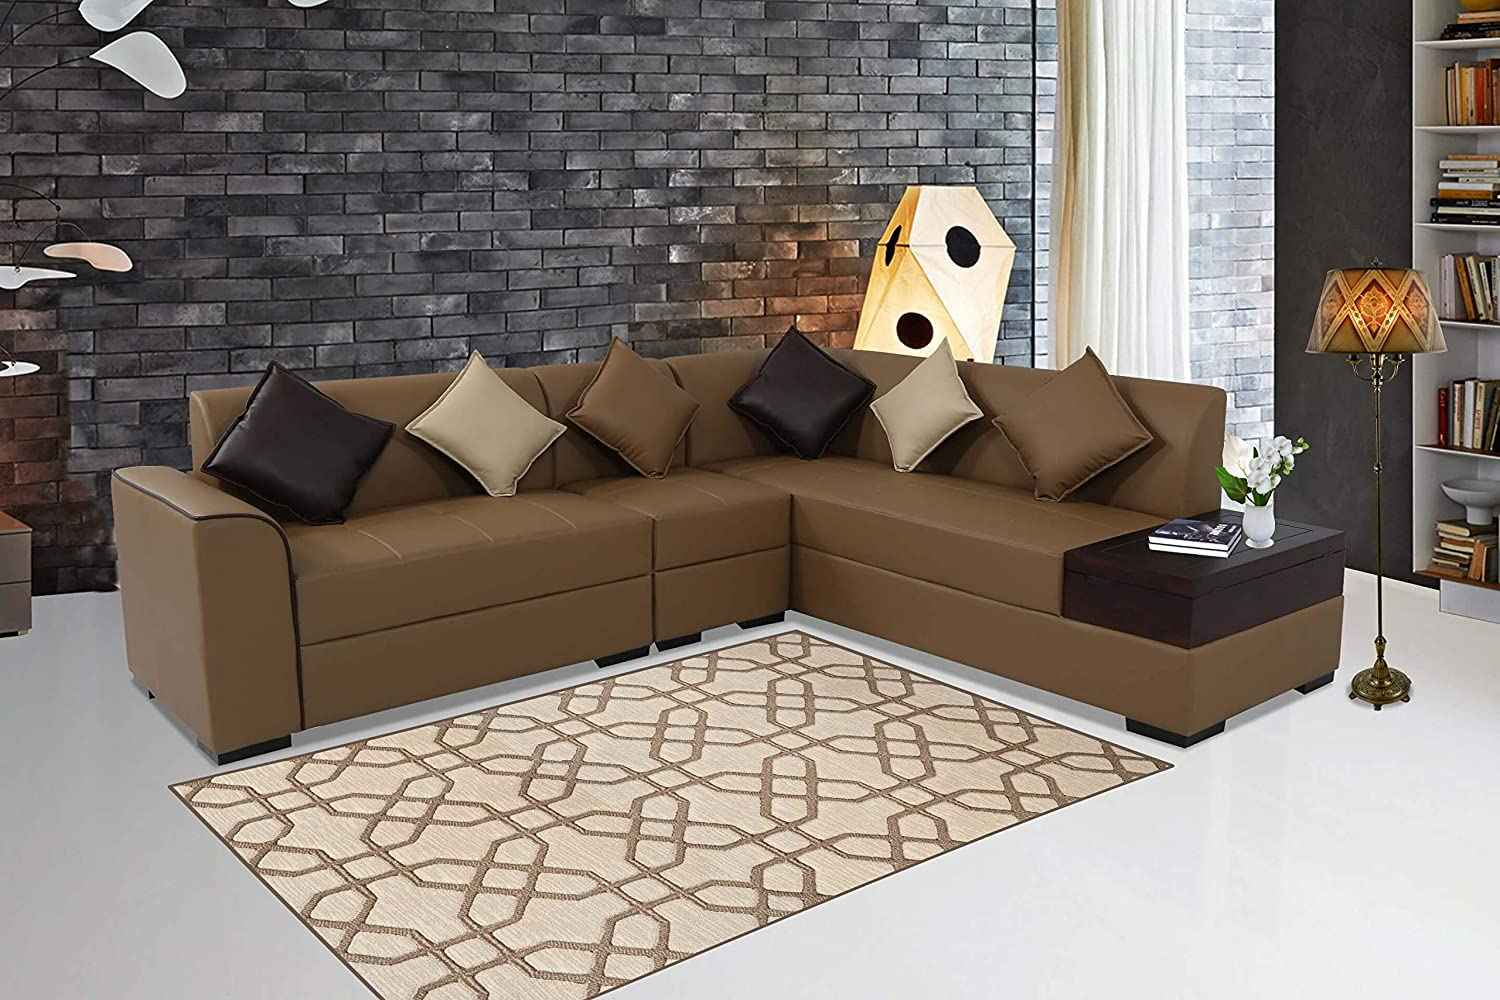 Muebles Casa Coral Six Seater L-Shaped Sofa (Tan Brown)